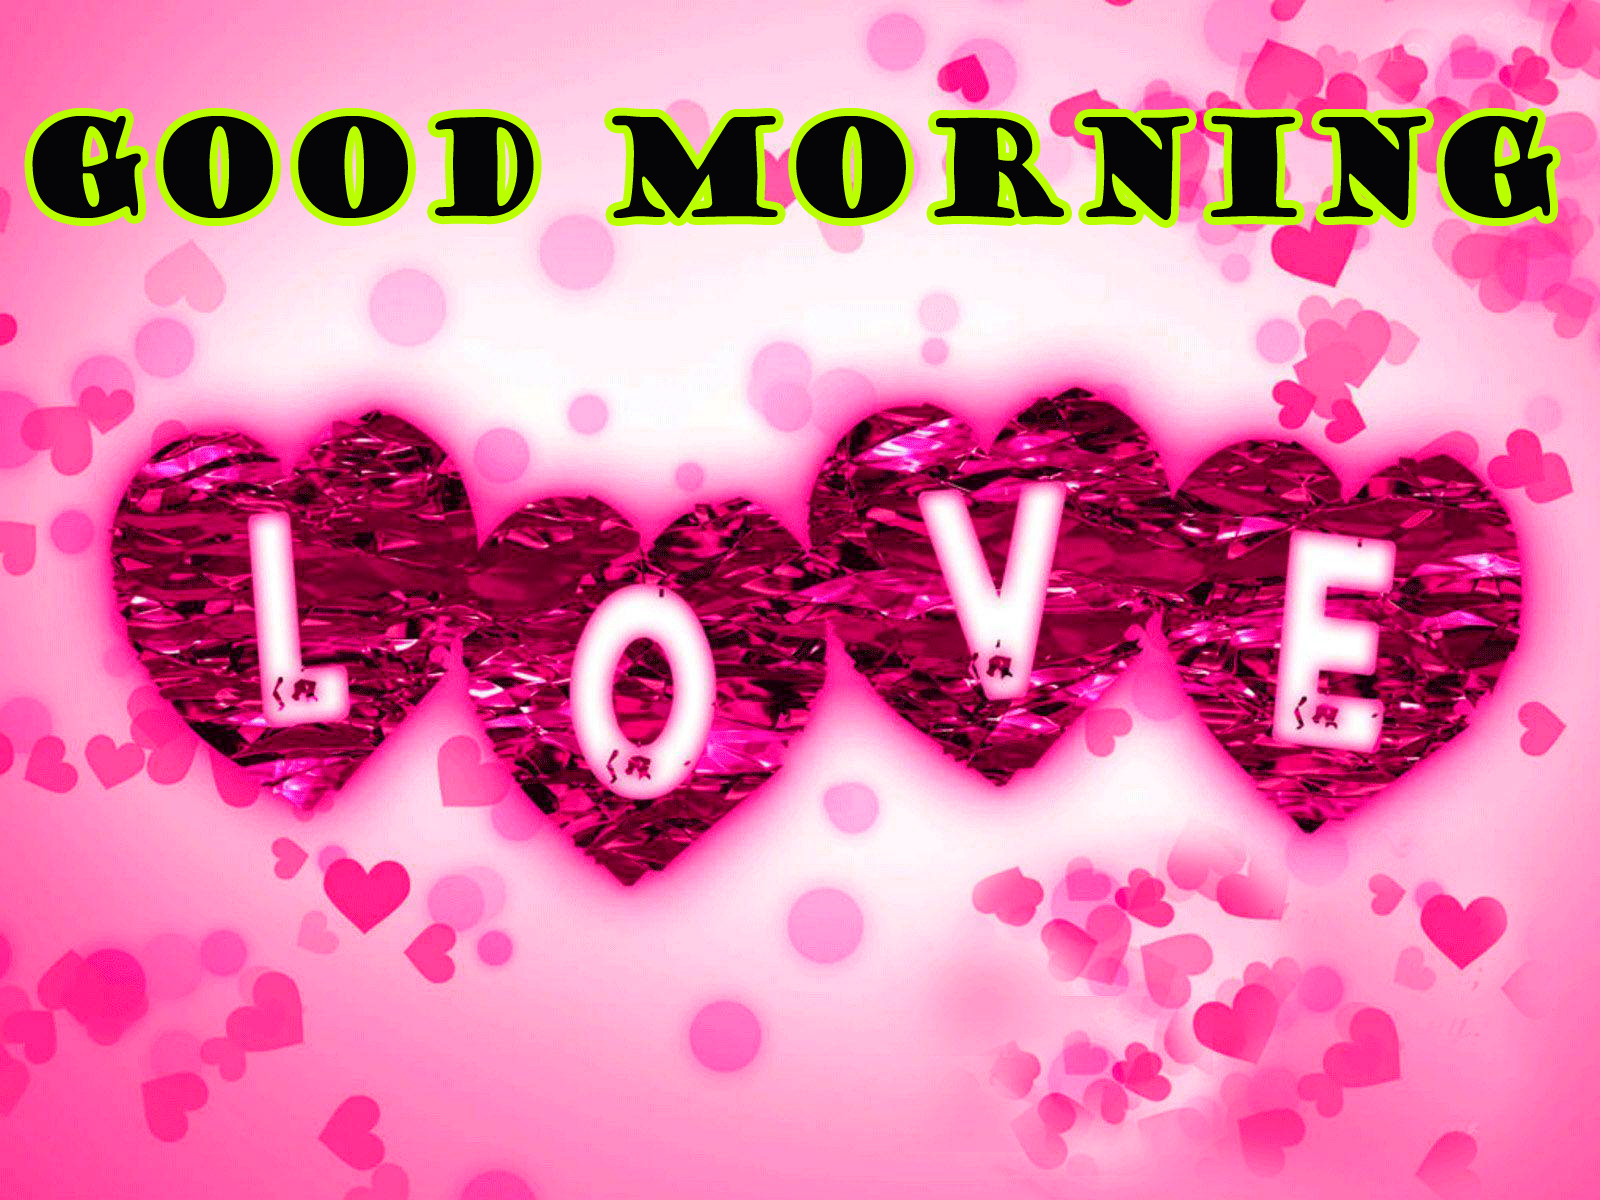 Special Wonderful Good Morning Images Pictures Free HD Download